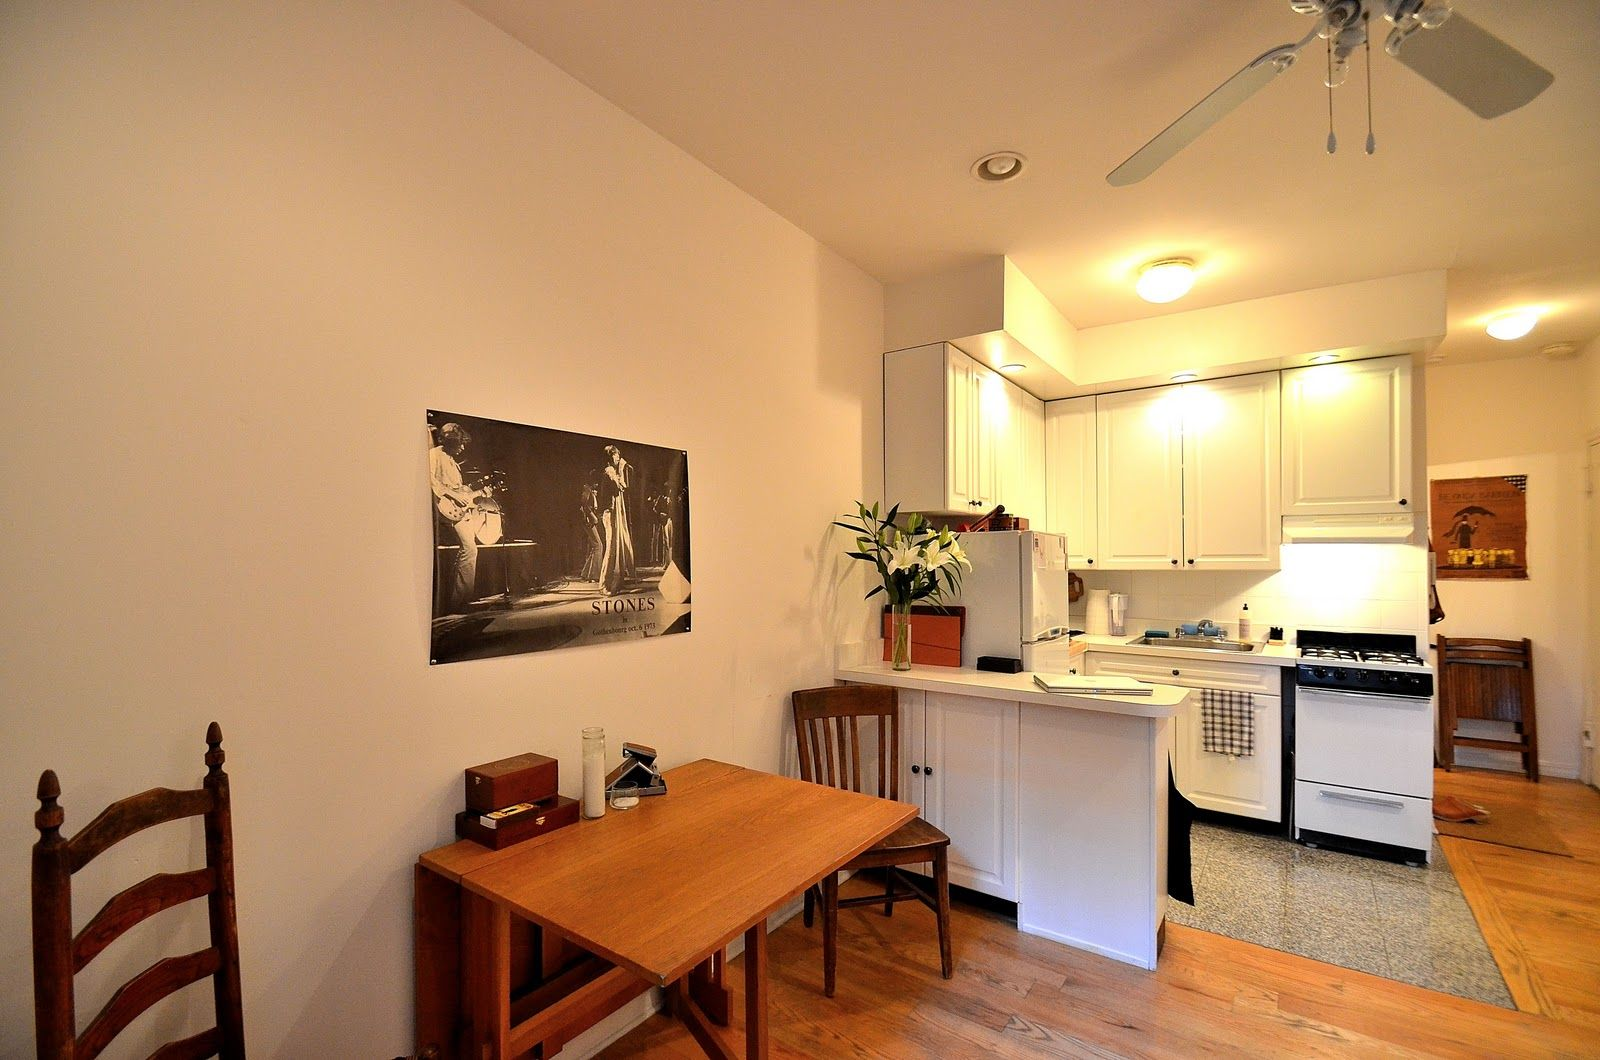 Incroyable Terrific Apartment Design Shows Minimalism Concept Idea : Tiny Apartment  Dinner And Reading Table With Rolling Stones Poster